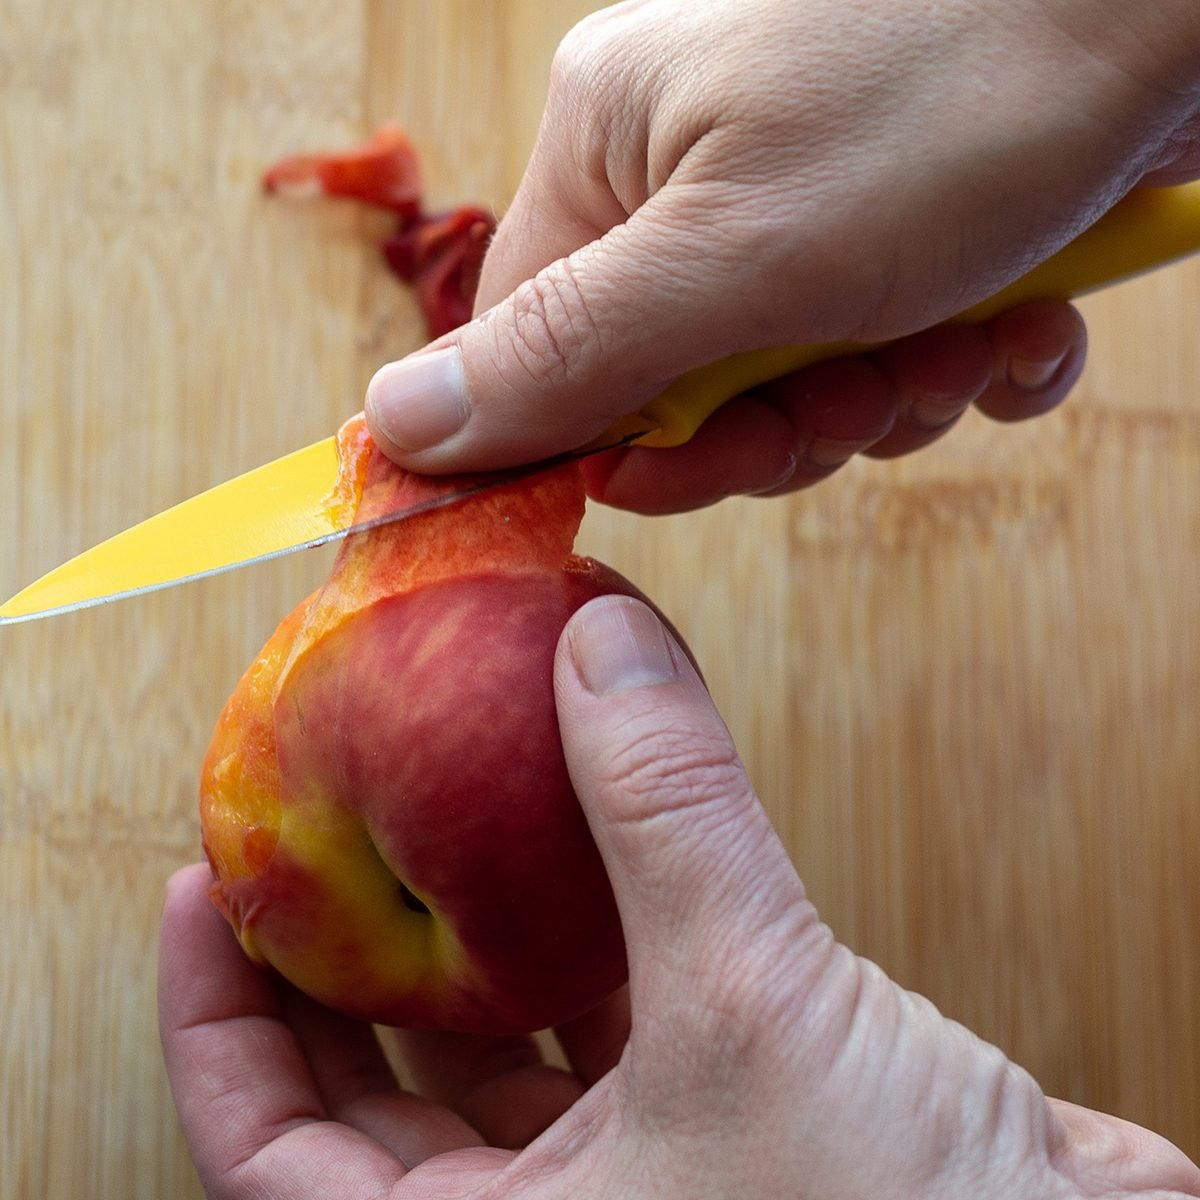 Using a yellow paring knife to peel skin from a blanched whole peach.